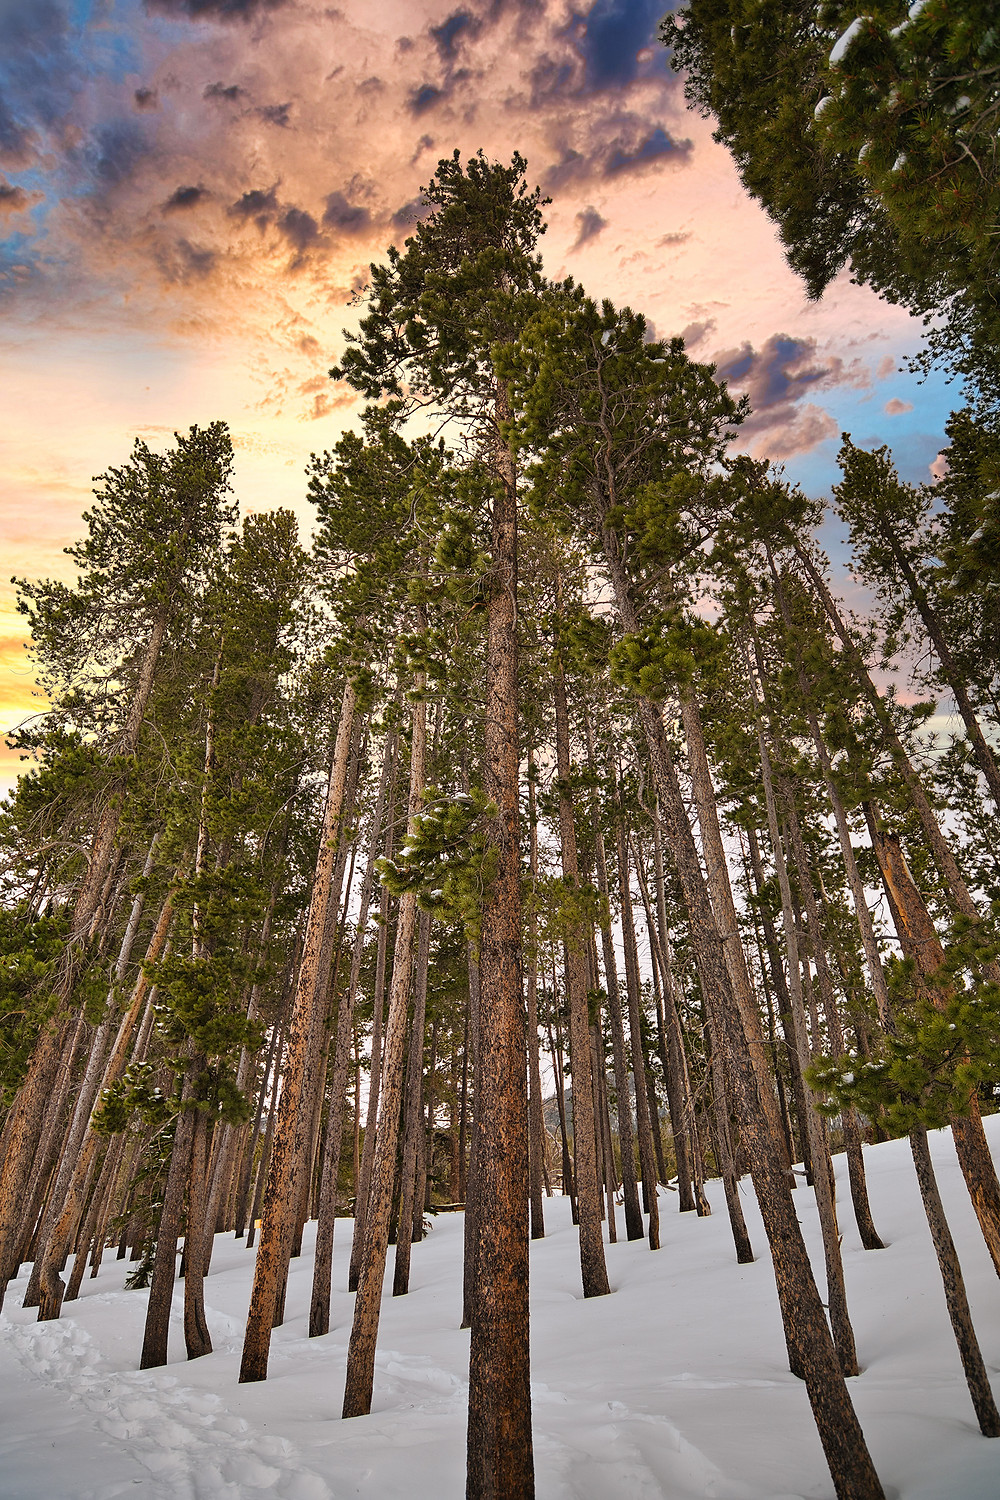 Sunset photo with trees at Rocky Mountain National Park in Colorado